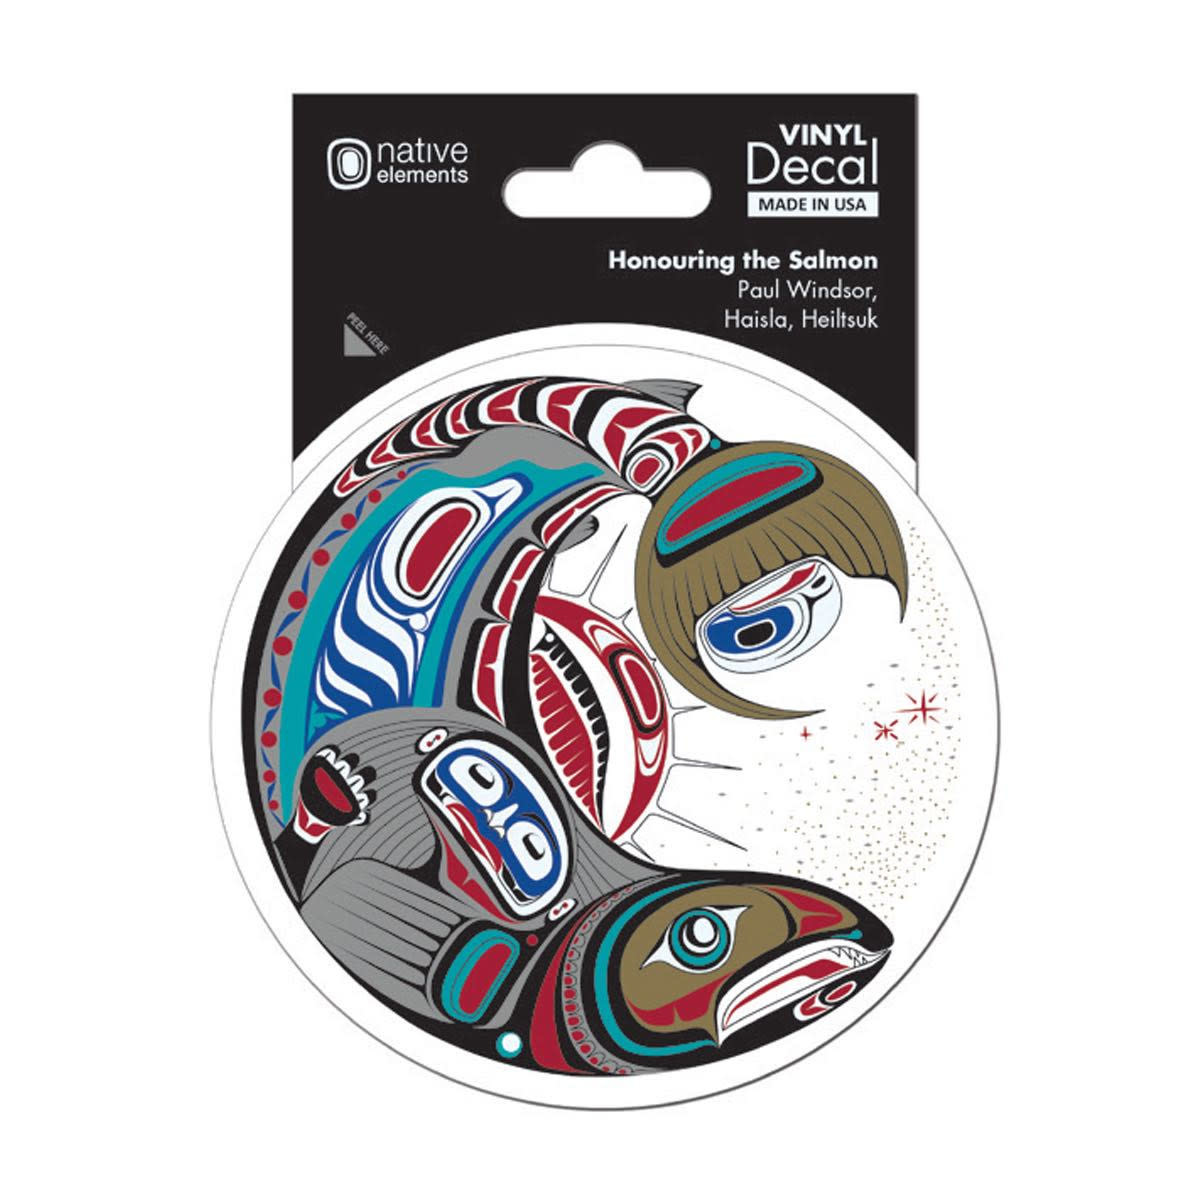 Premium Decal-Honouring the Salmon by Paul Windsor-1